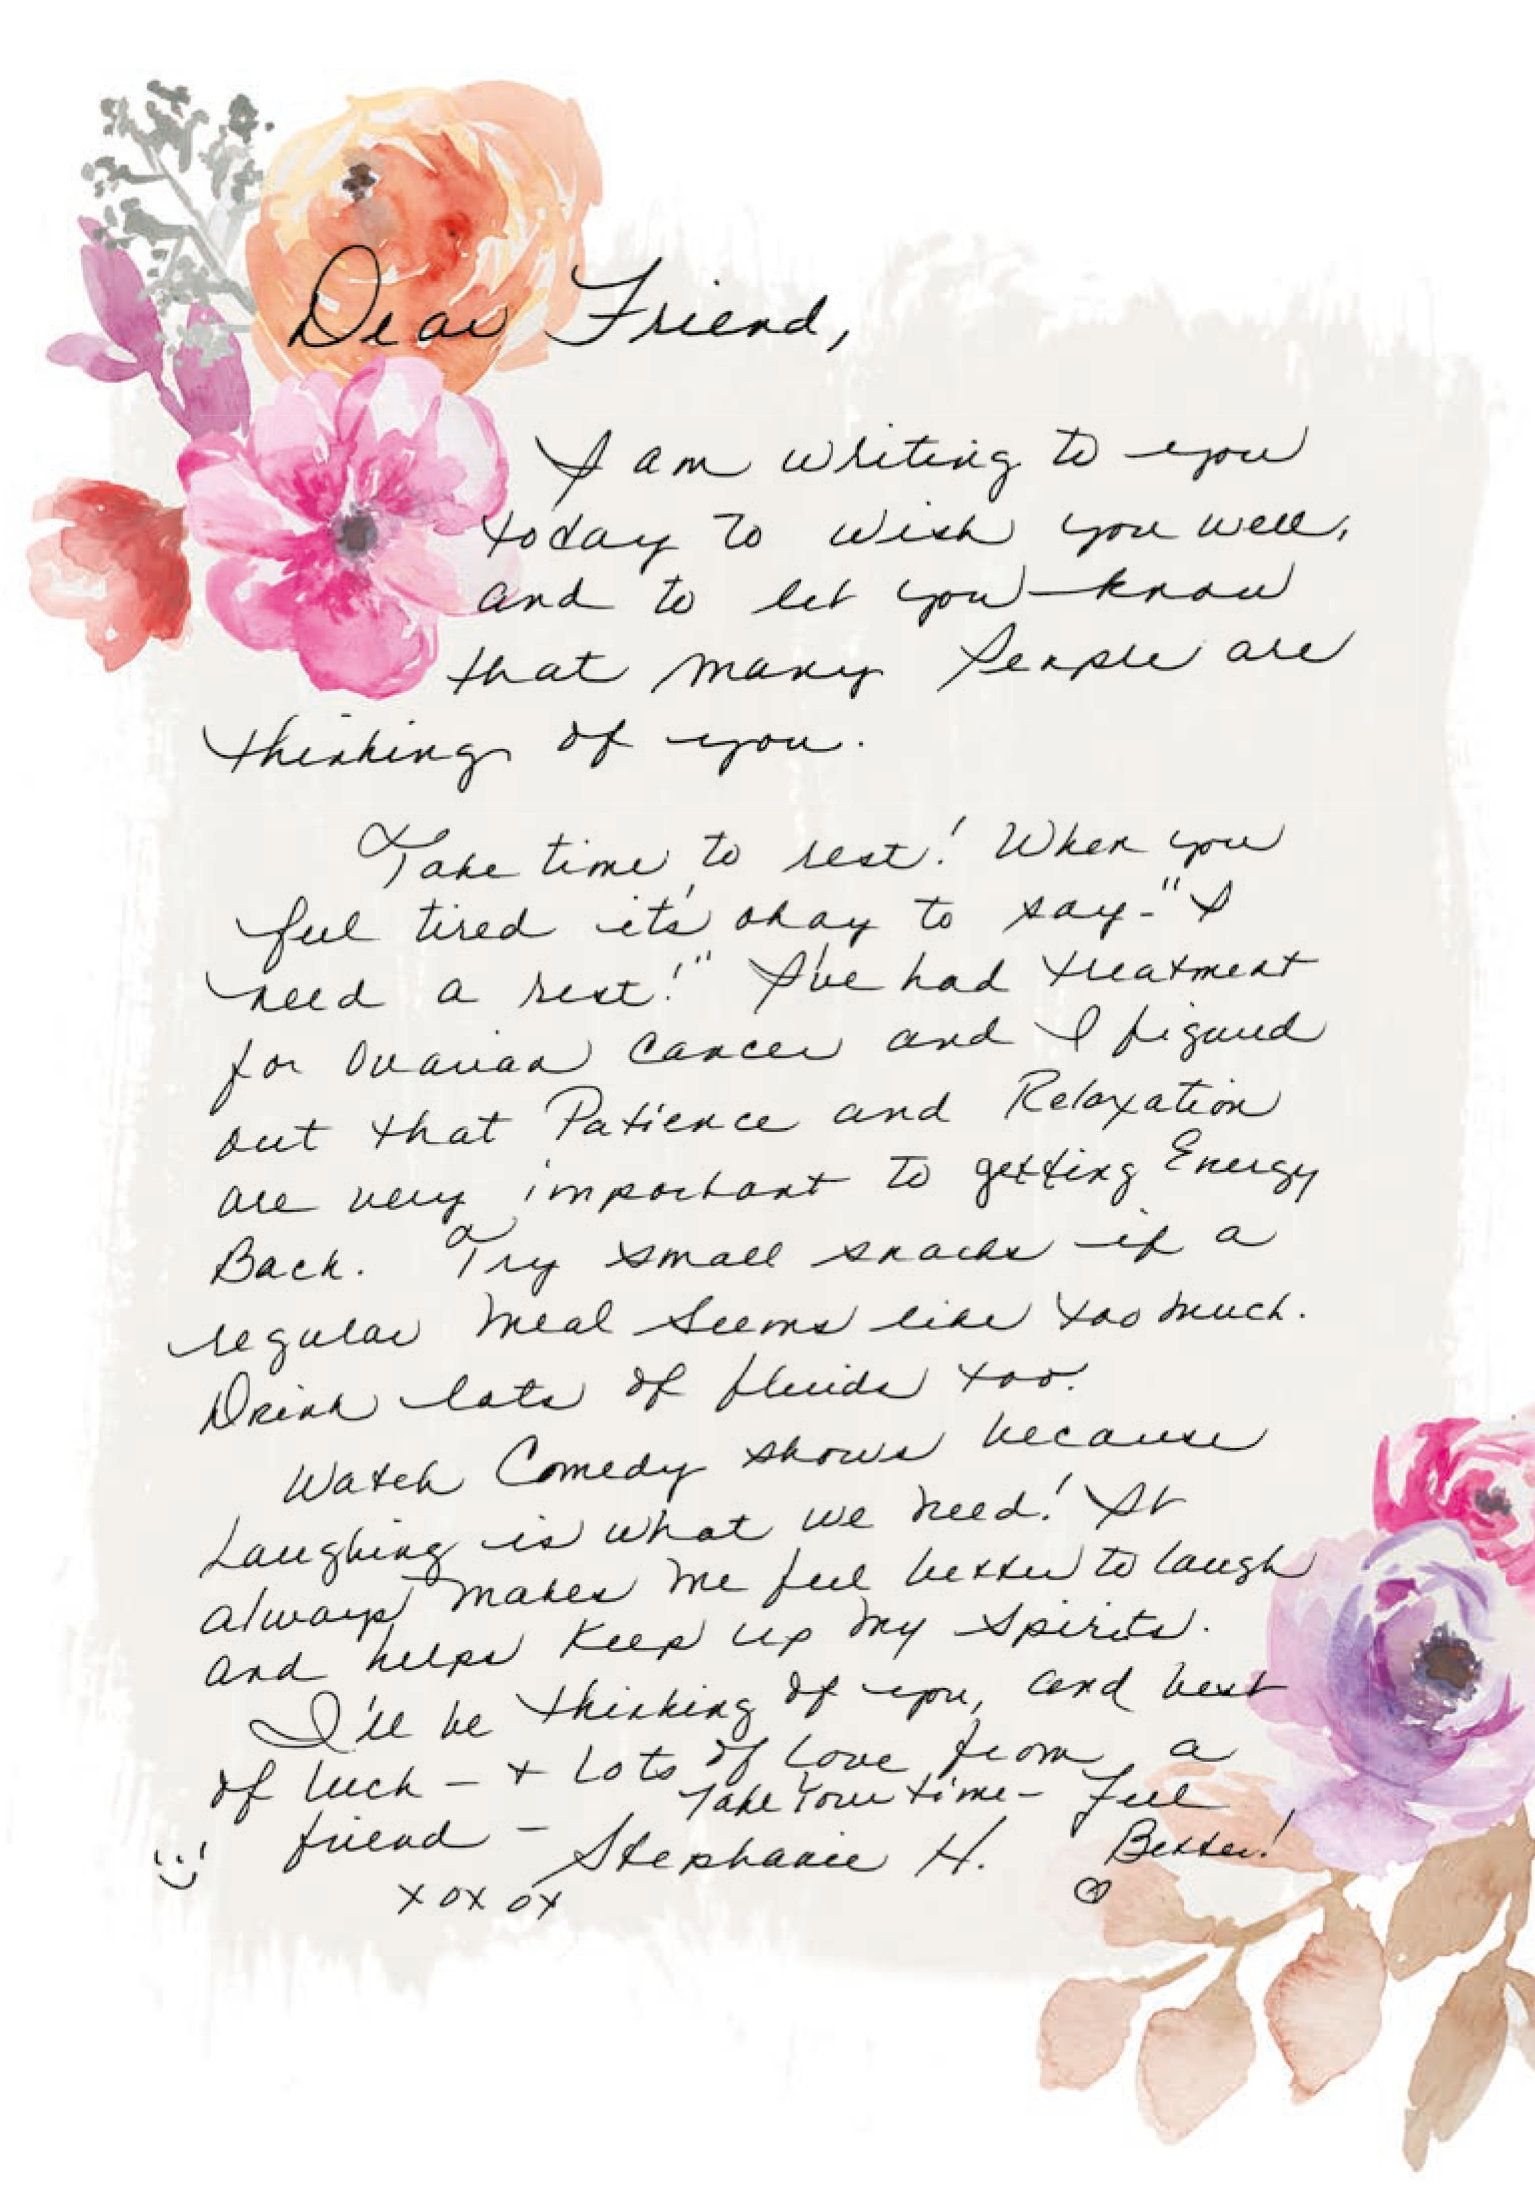 Cancer Survivor Collects 80,000 Handwritten Letters Of Love For Other Women With Breast